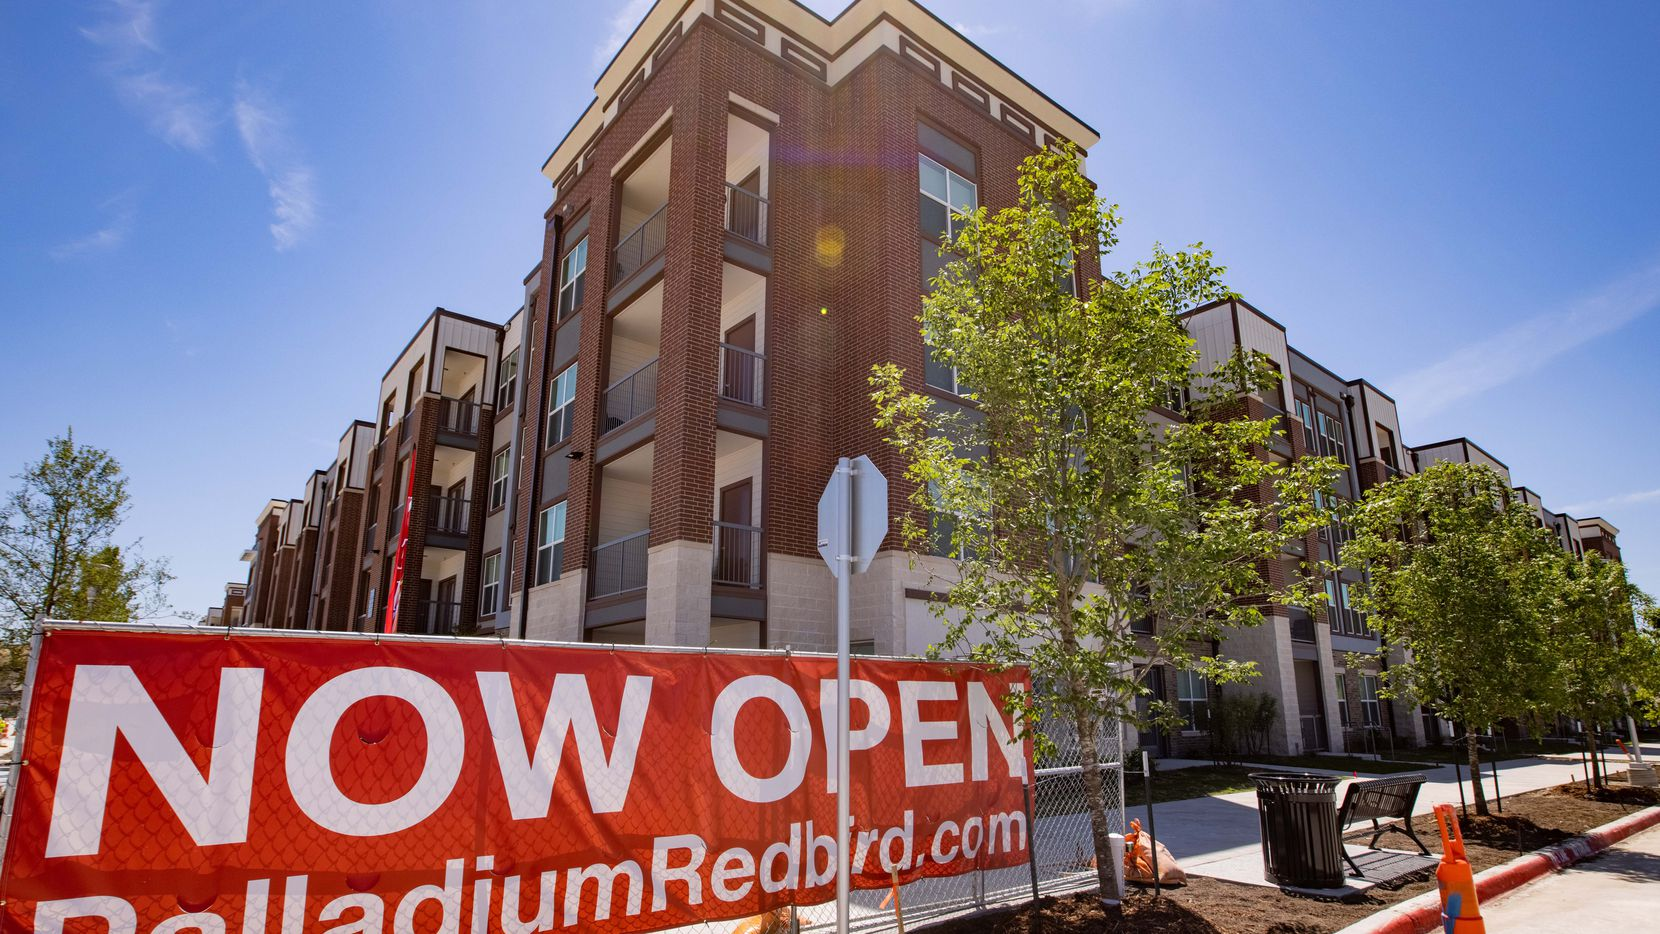 The exterior of the Palladium RedBird apartments on May 7, 2021, in Dallas.